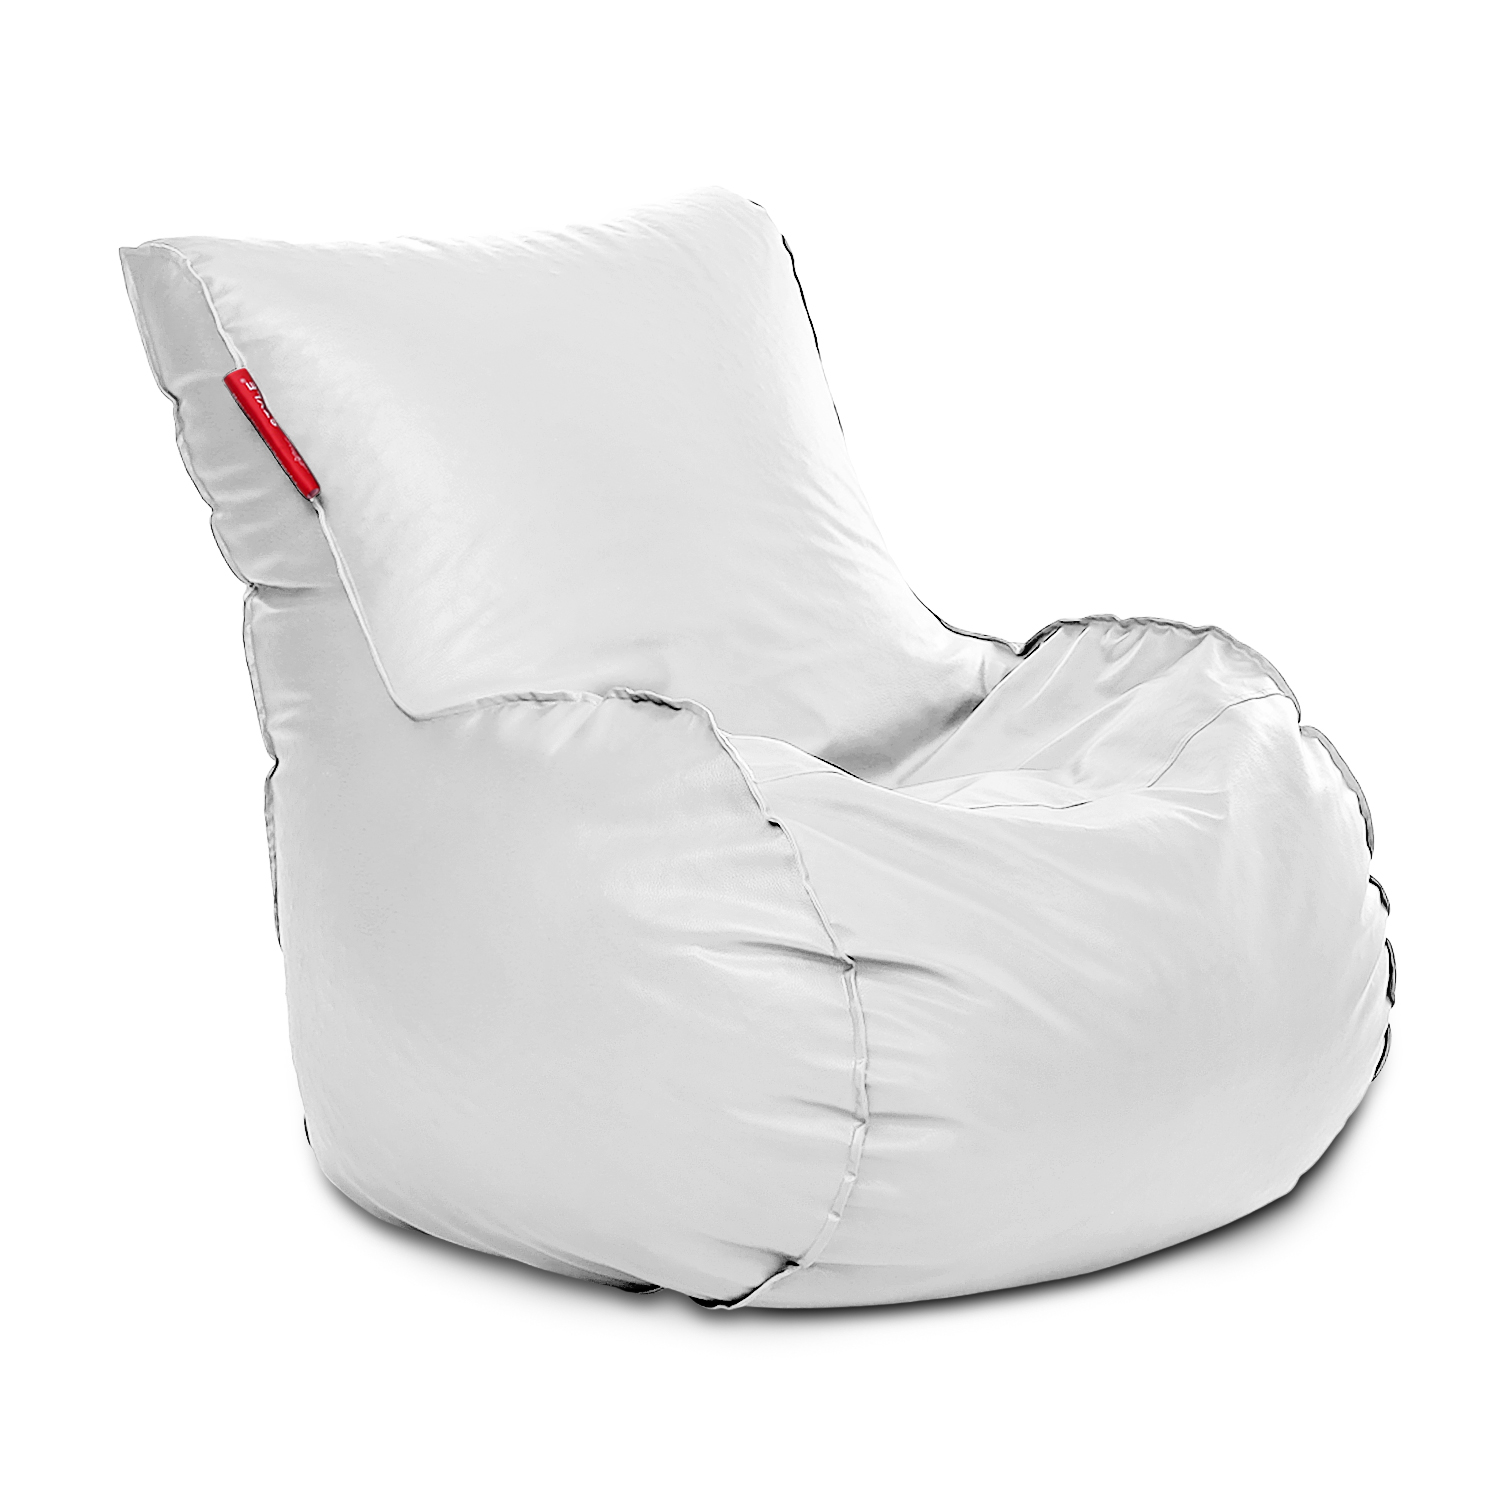 Style Homez Mambo Lounger XXXL Bean Bag White Color Cover Only